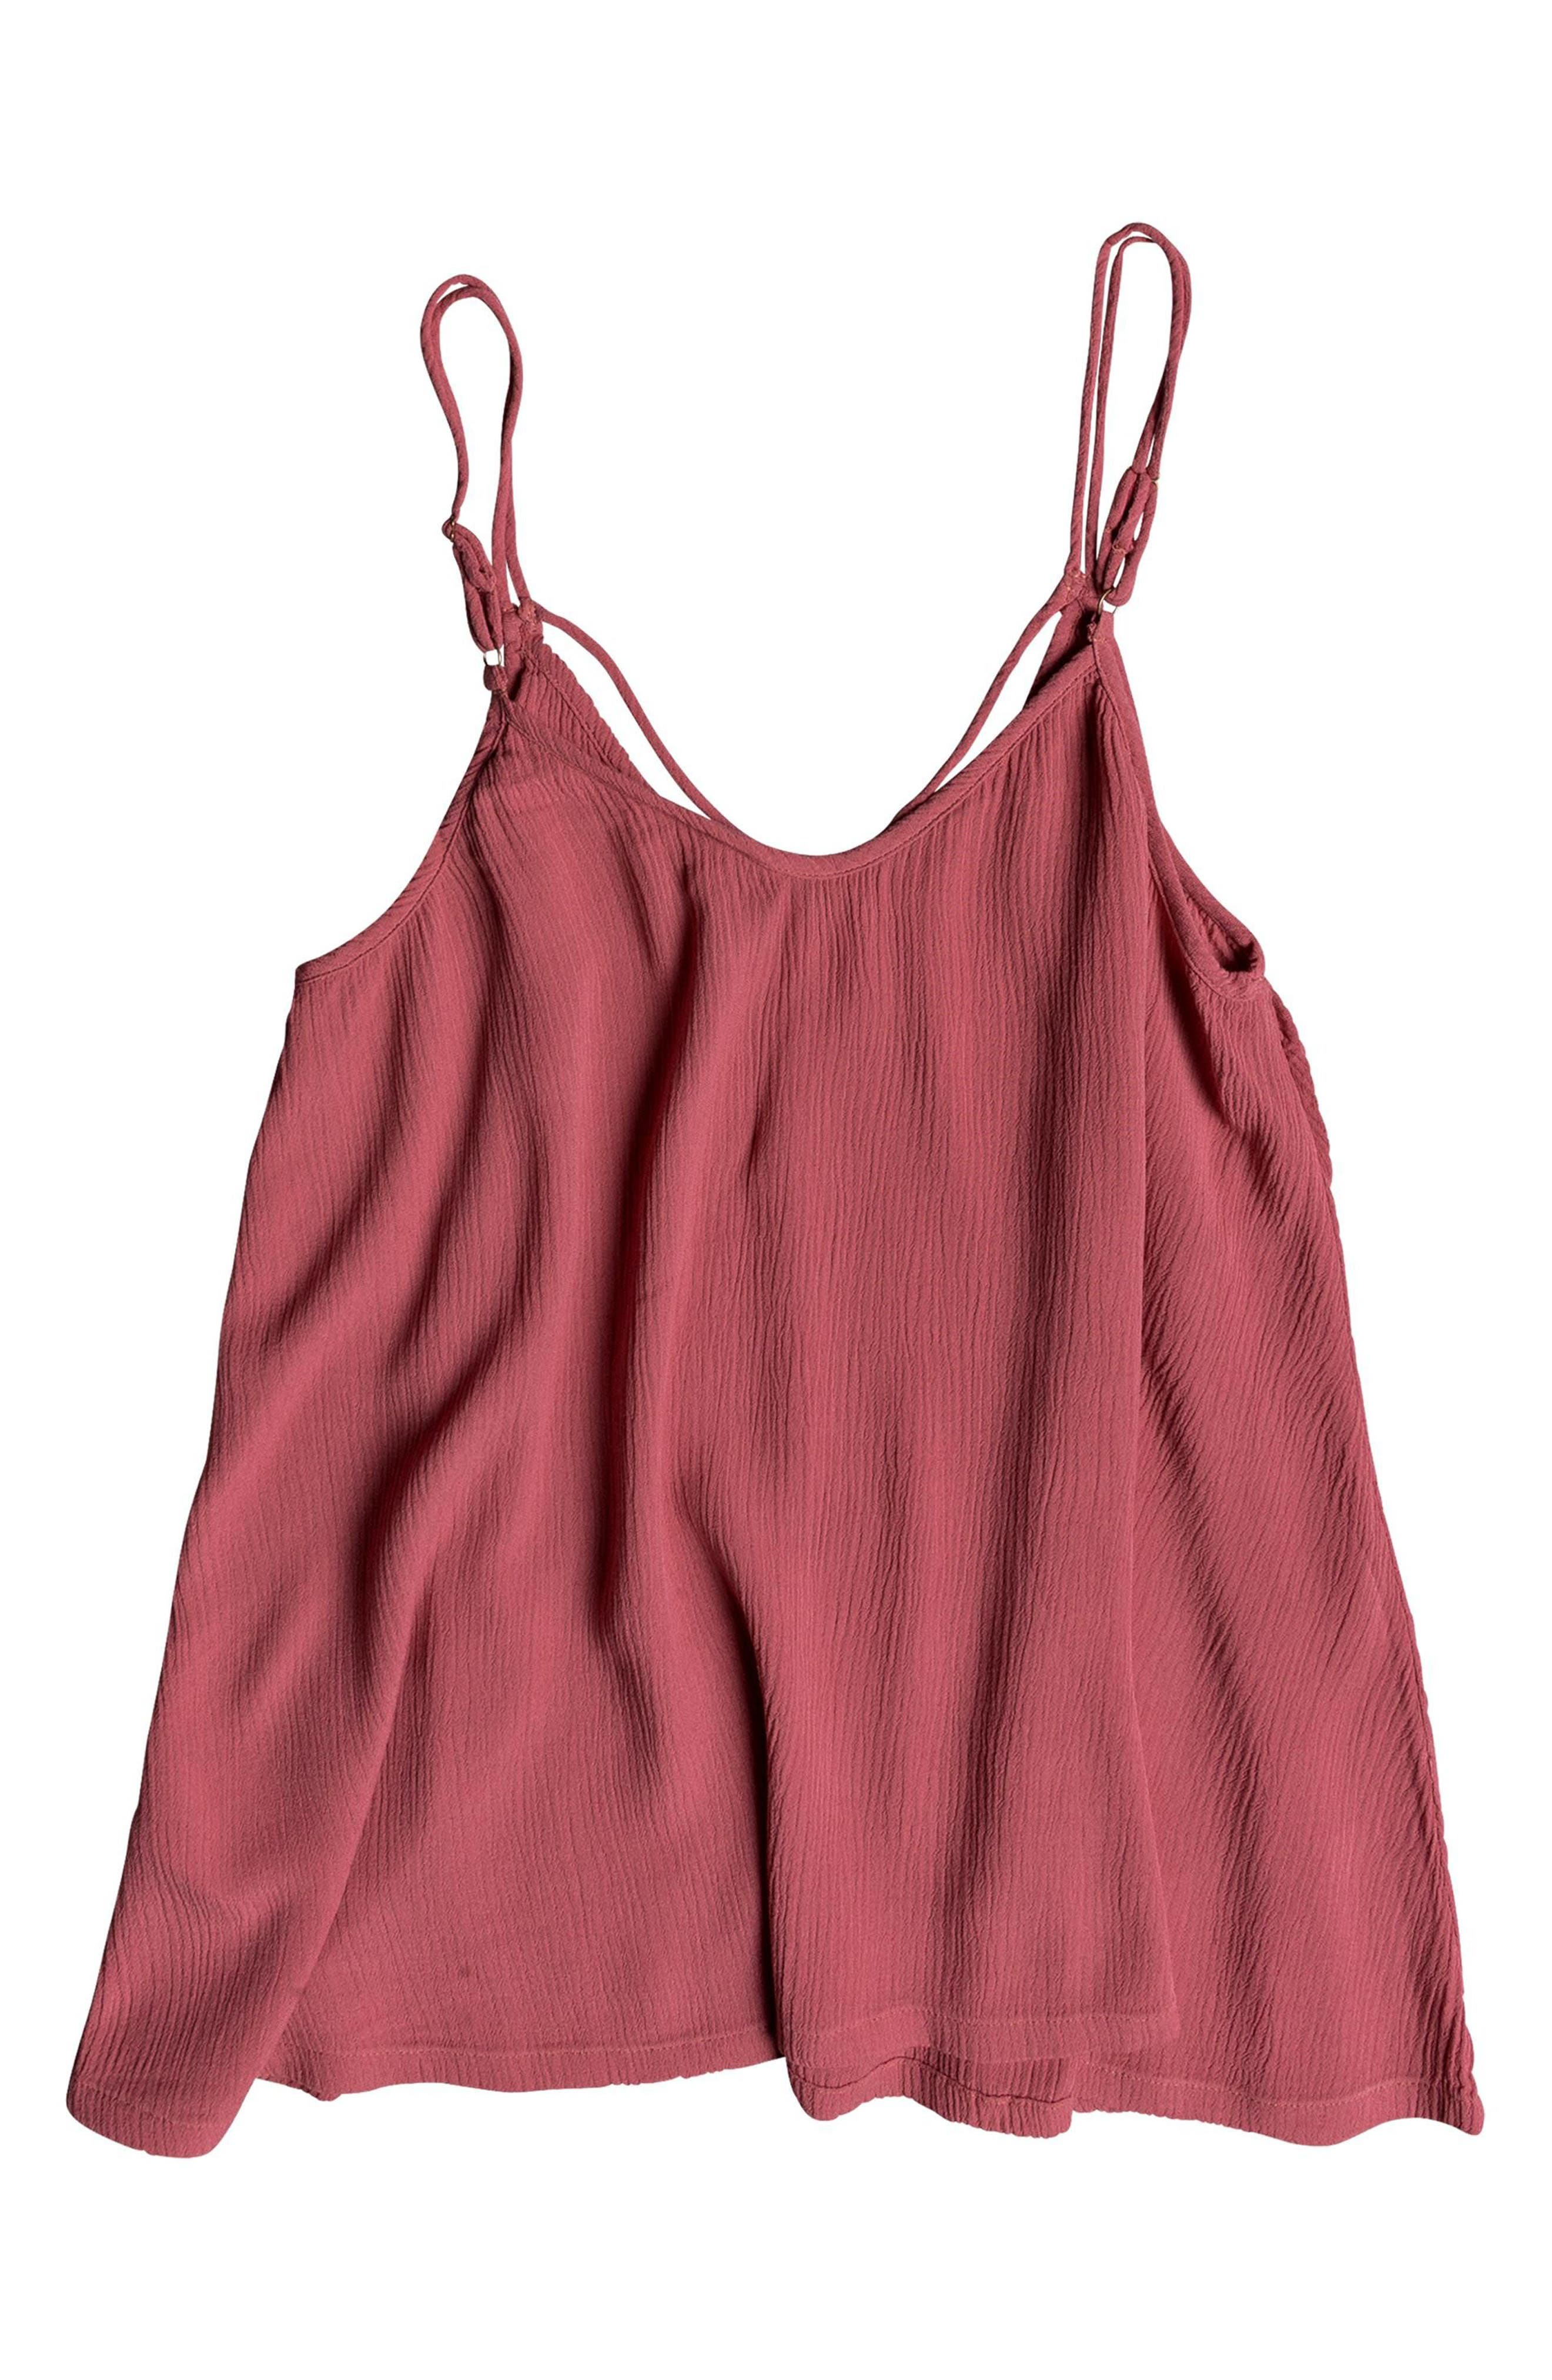 Final Days Tank Top,                             Alternate thumbnail 3, color,                             HOLLY BERRY